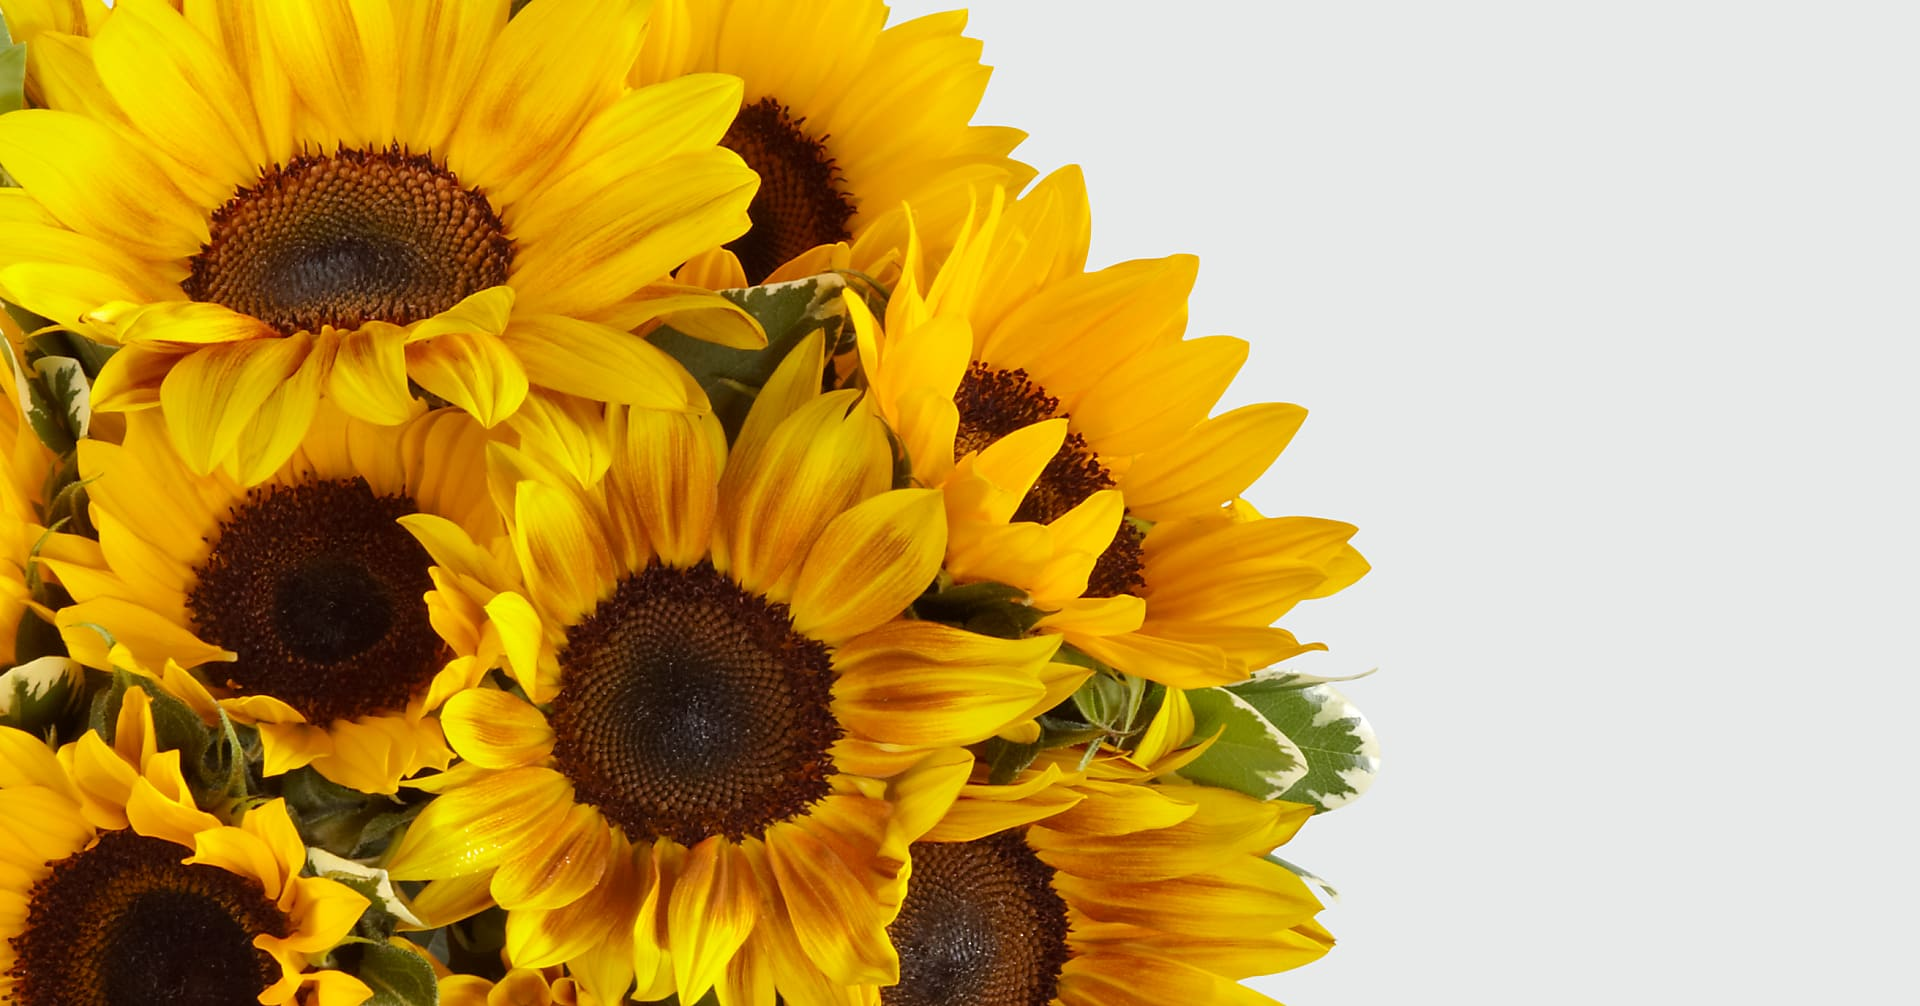 Endless Summer Sunflower Bouquet - Image 4 Of 5